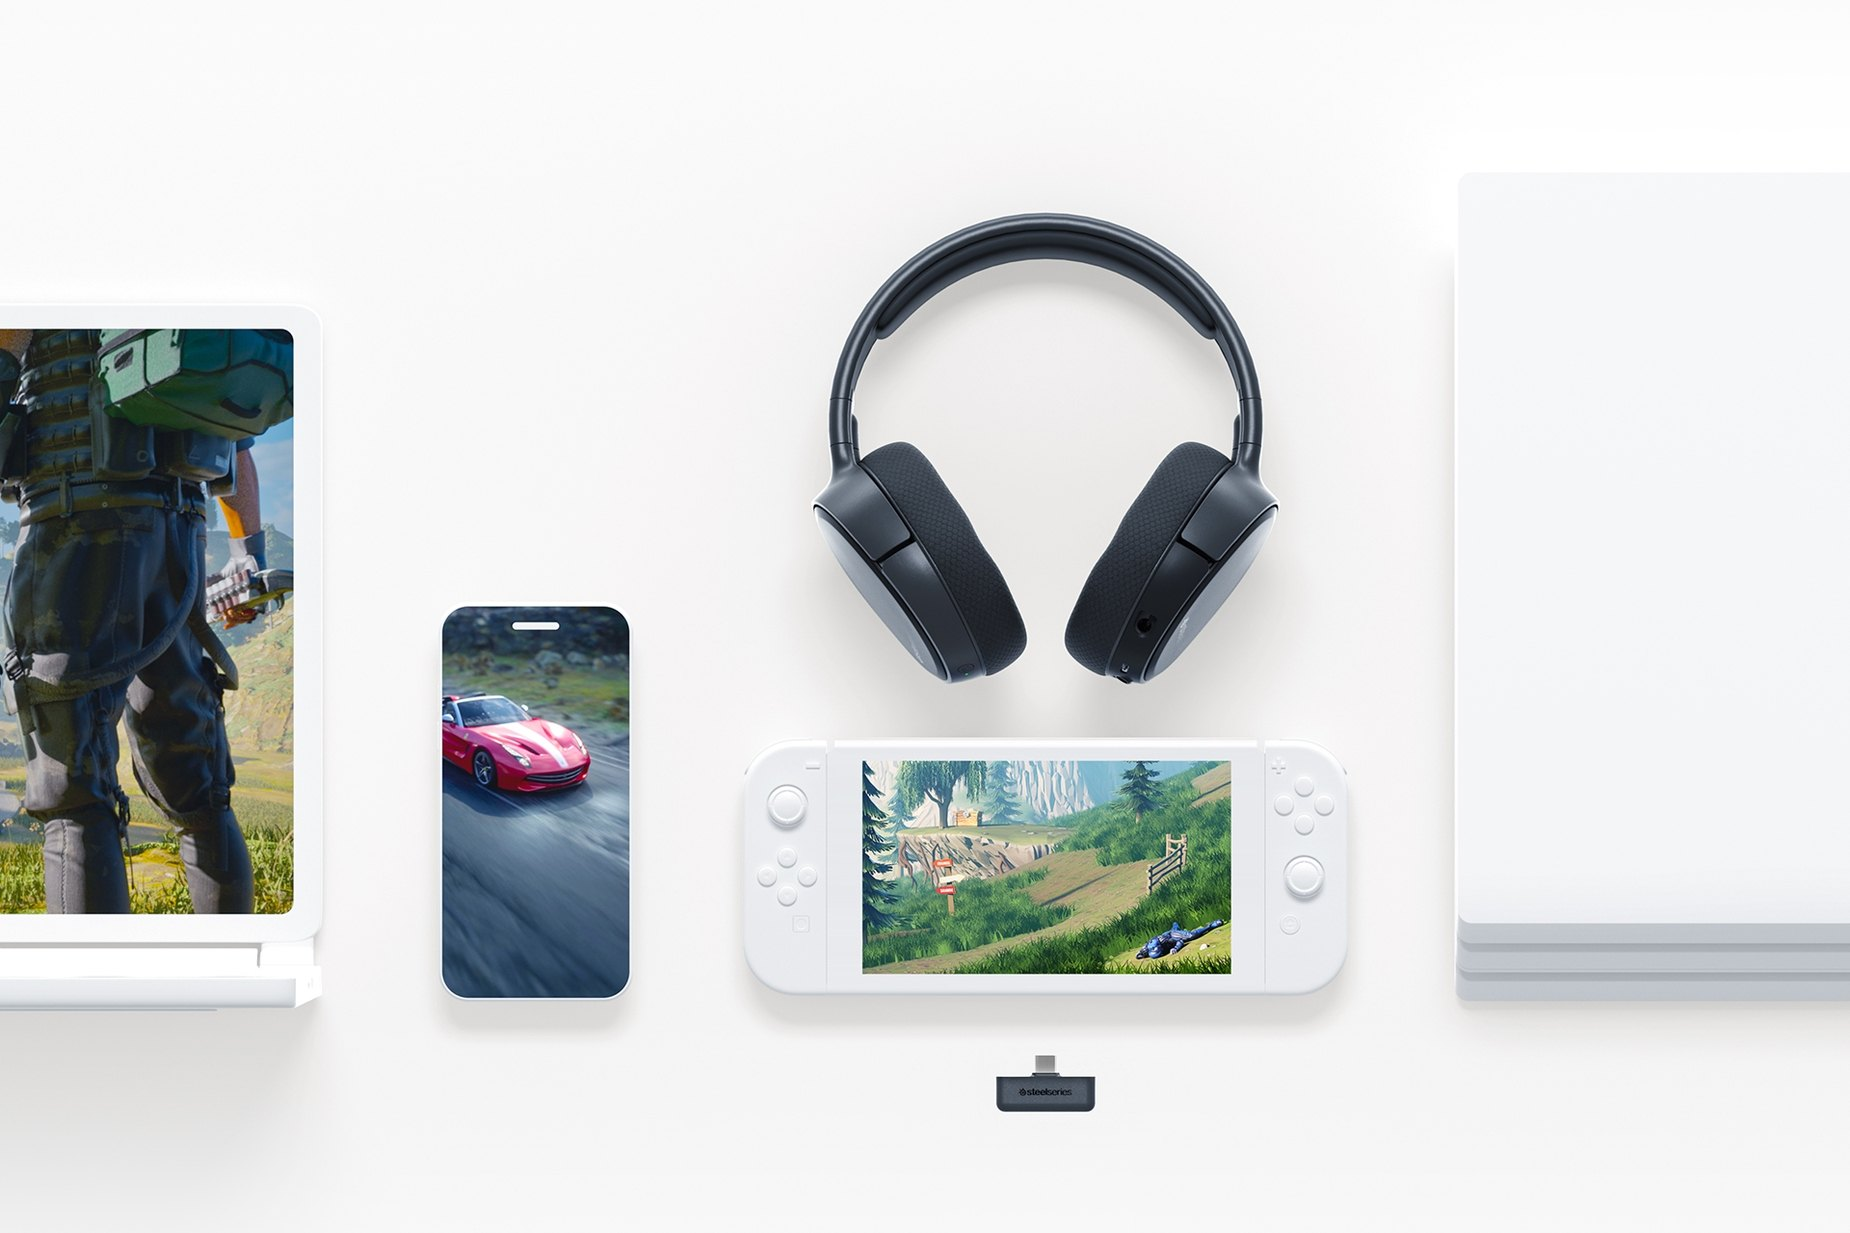 Arctis 1 Wireless for Switch headset laying on a plain table with a mobile phone, Switch, console, and tablet